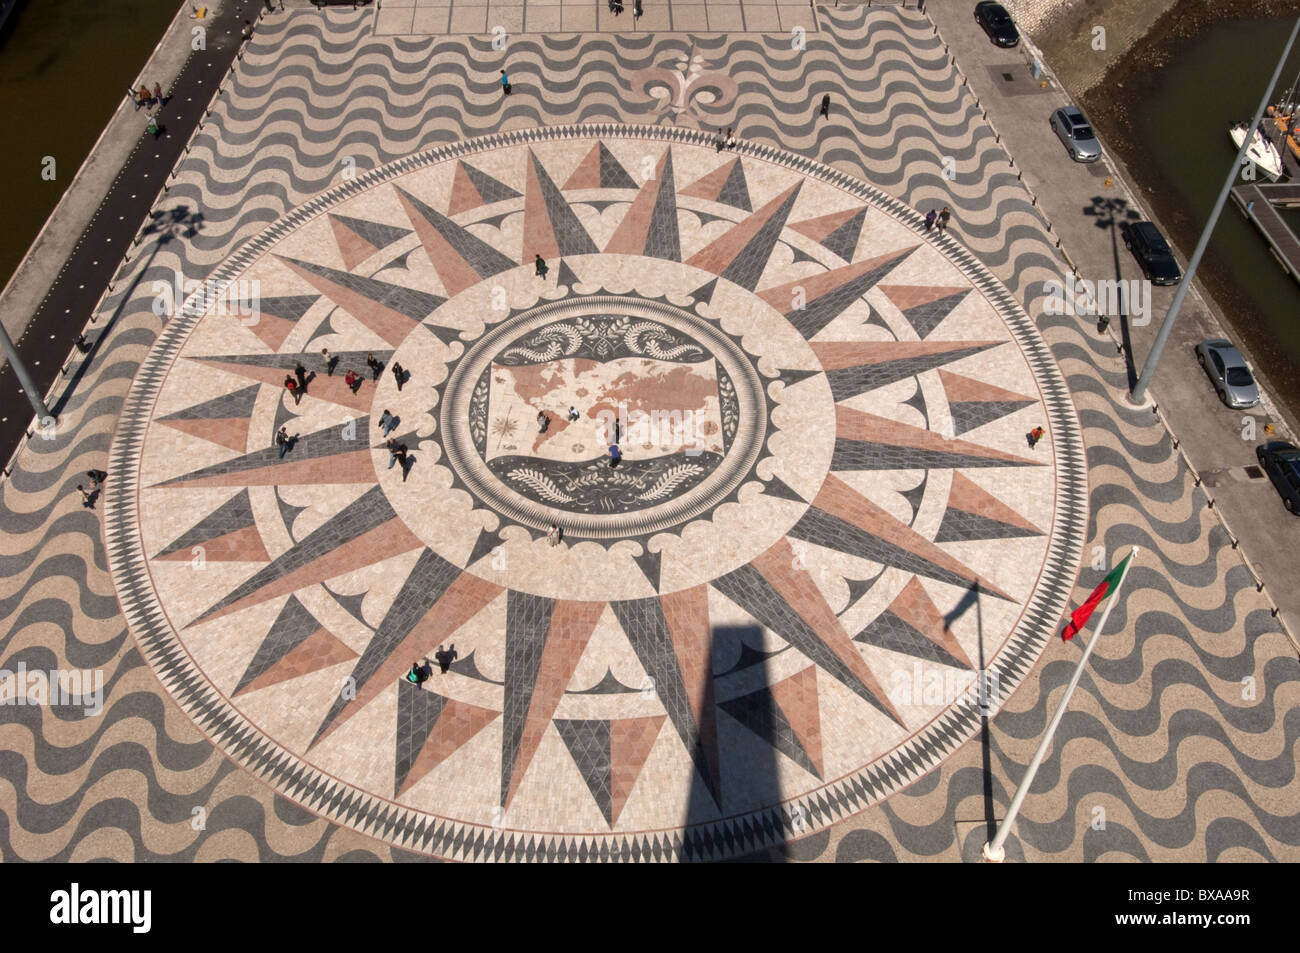 Lisbon. Portugal. view from Monument to the Discoveries Padrao dos Descobrimentos in Belem - Stock Image